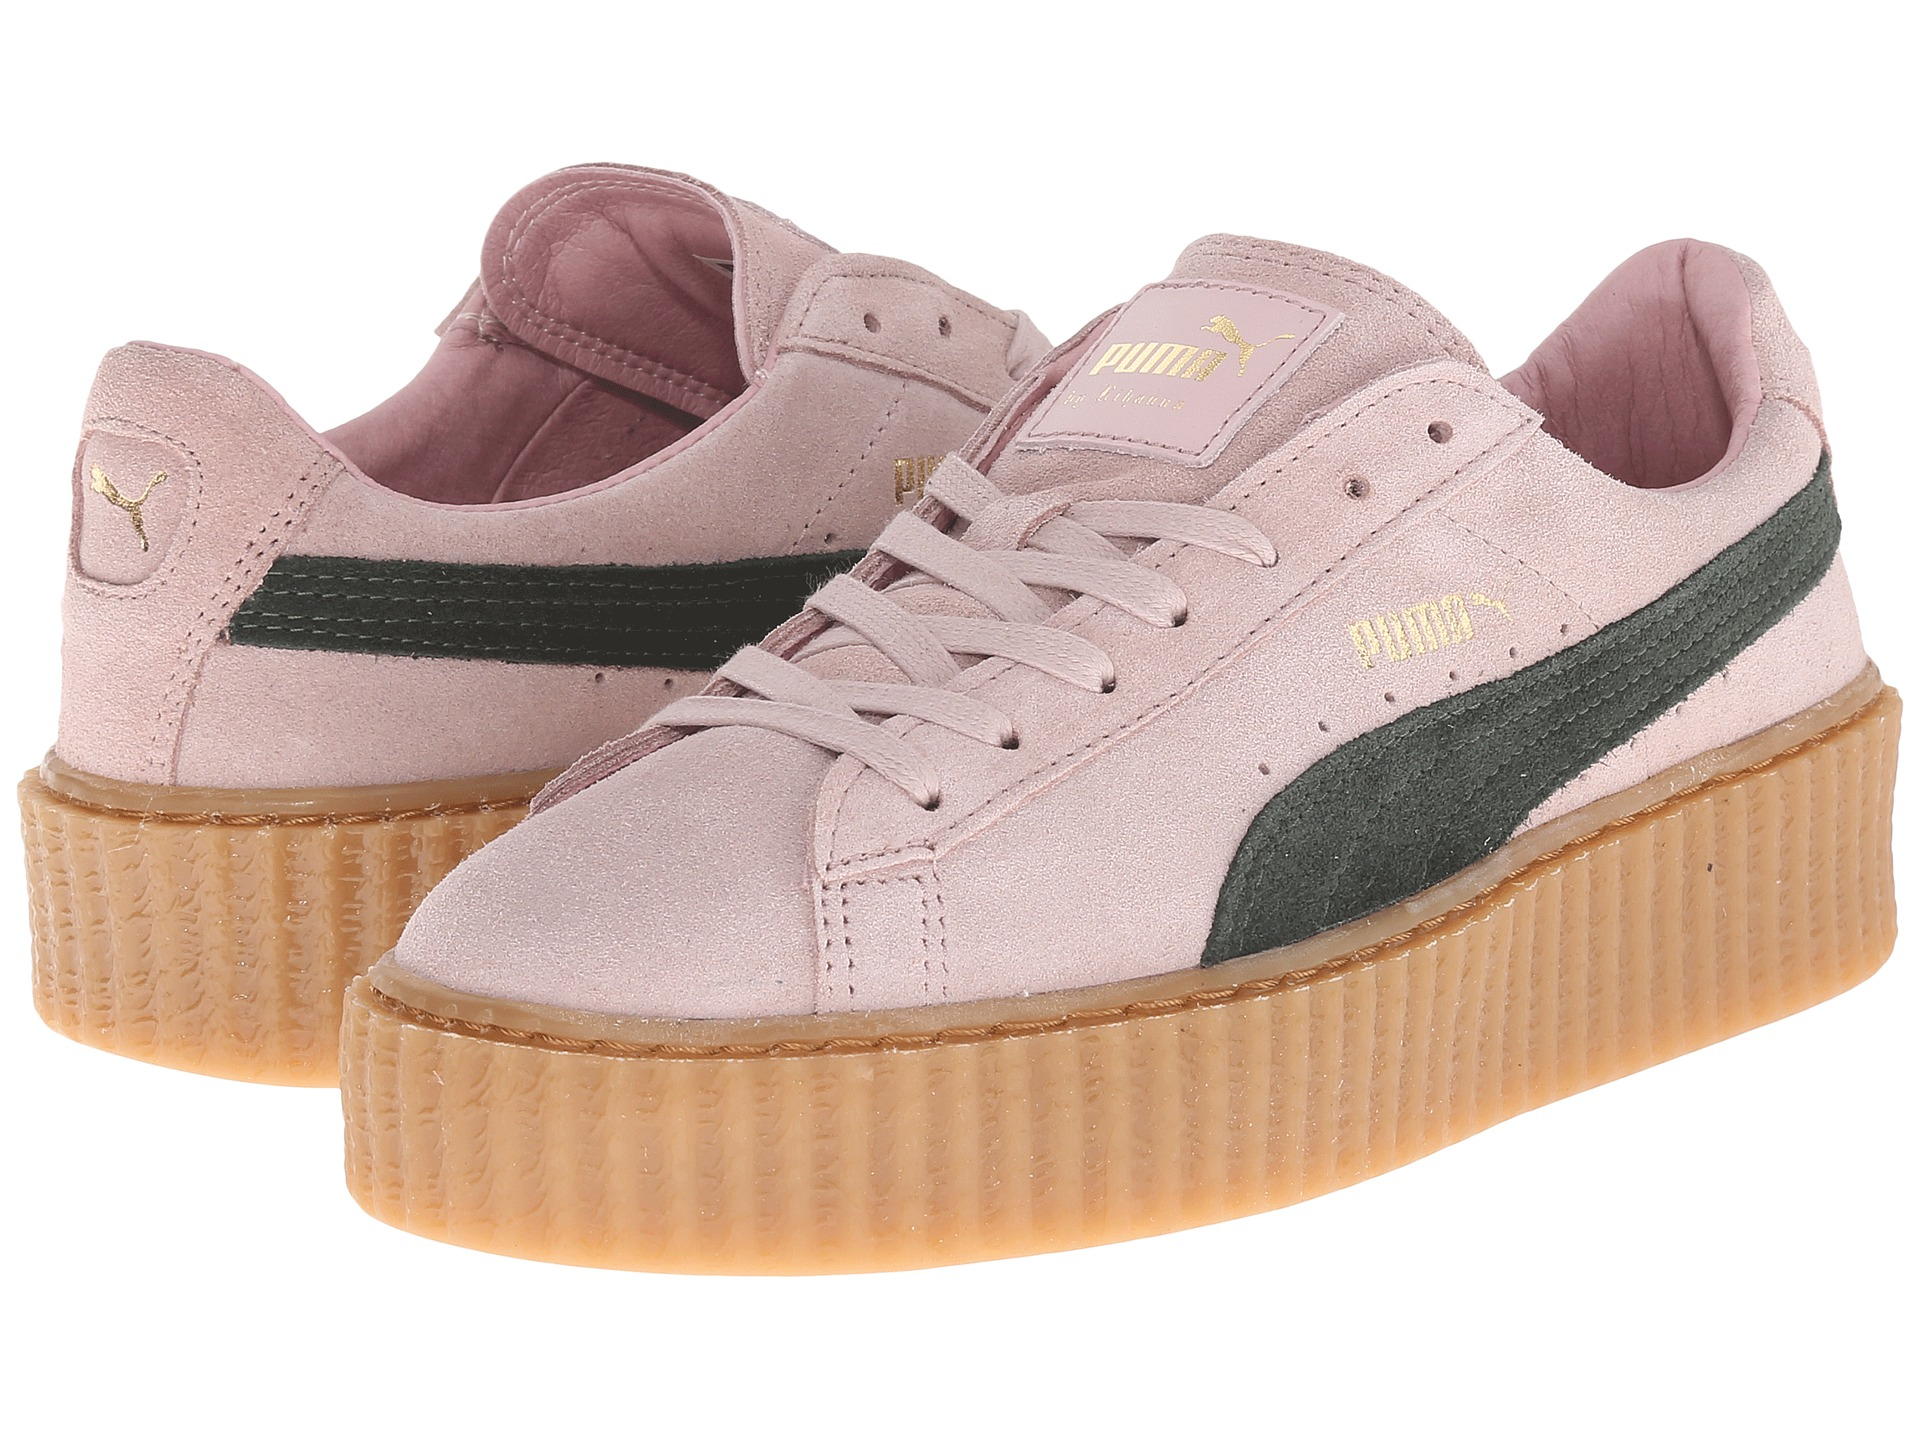 reputable site 0bc6d f6921 Women's Pink Rihanna X Suede Creepers